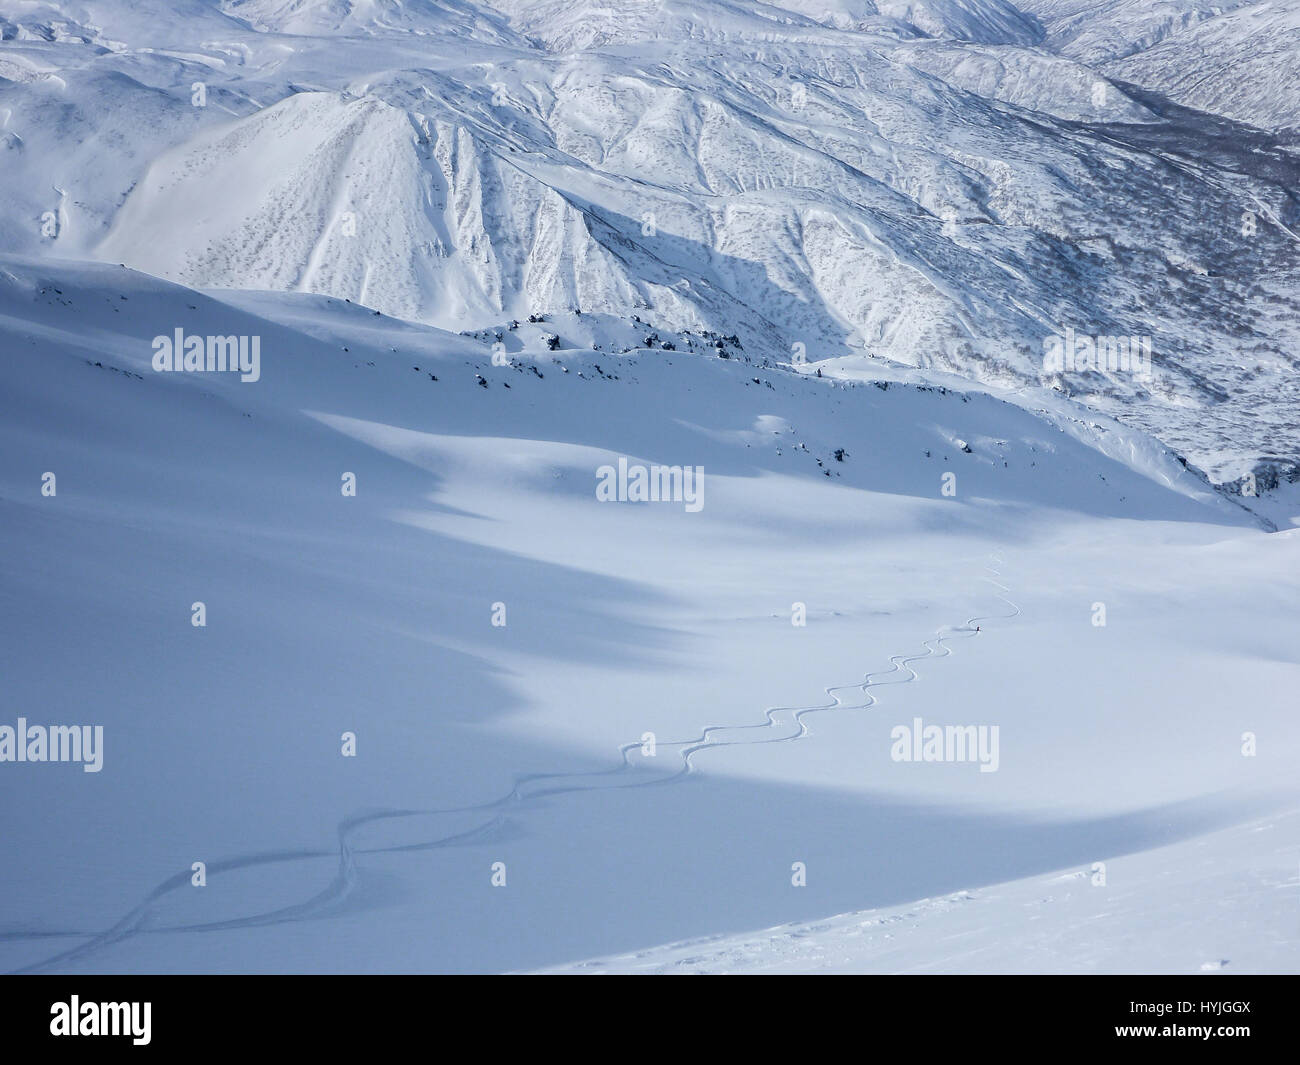 Skiers making two fresh tracks down a vast mountain valley in a snow covered landscape. - Stock Image